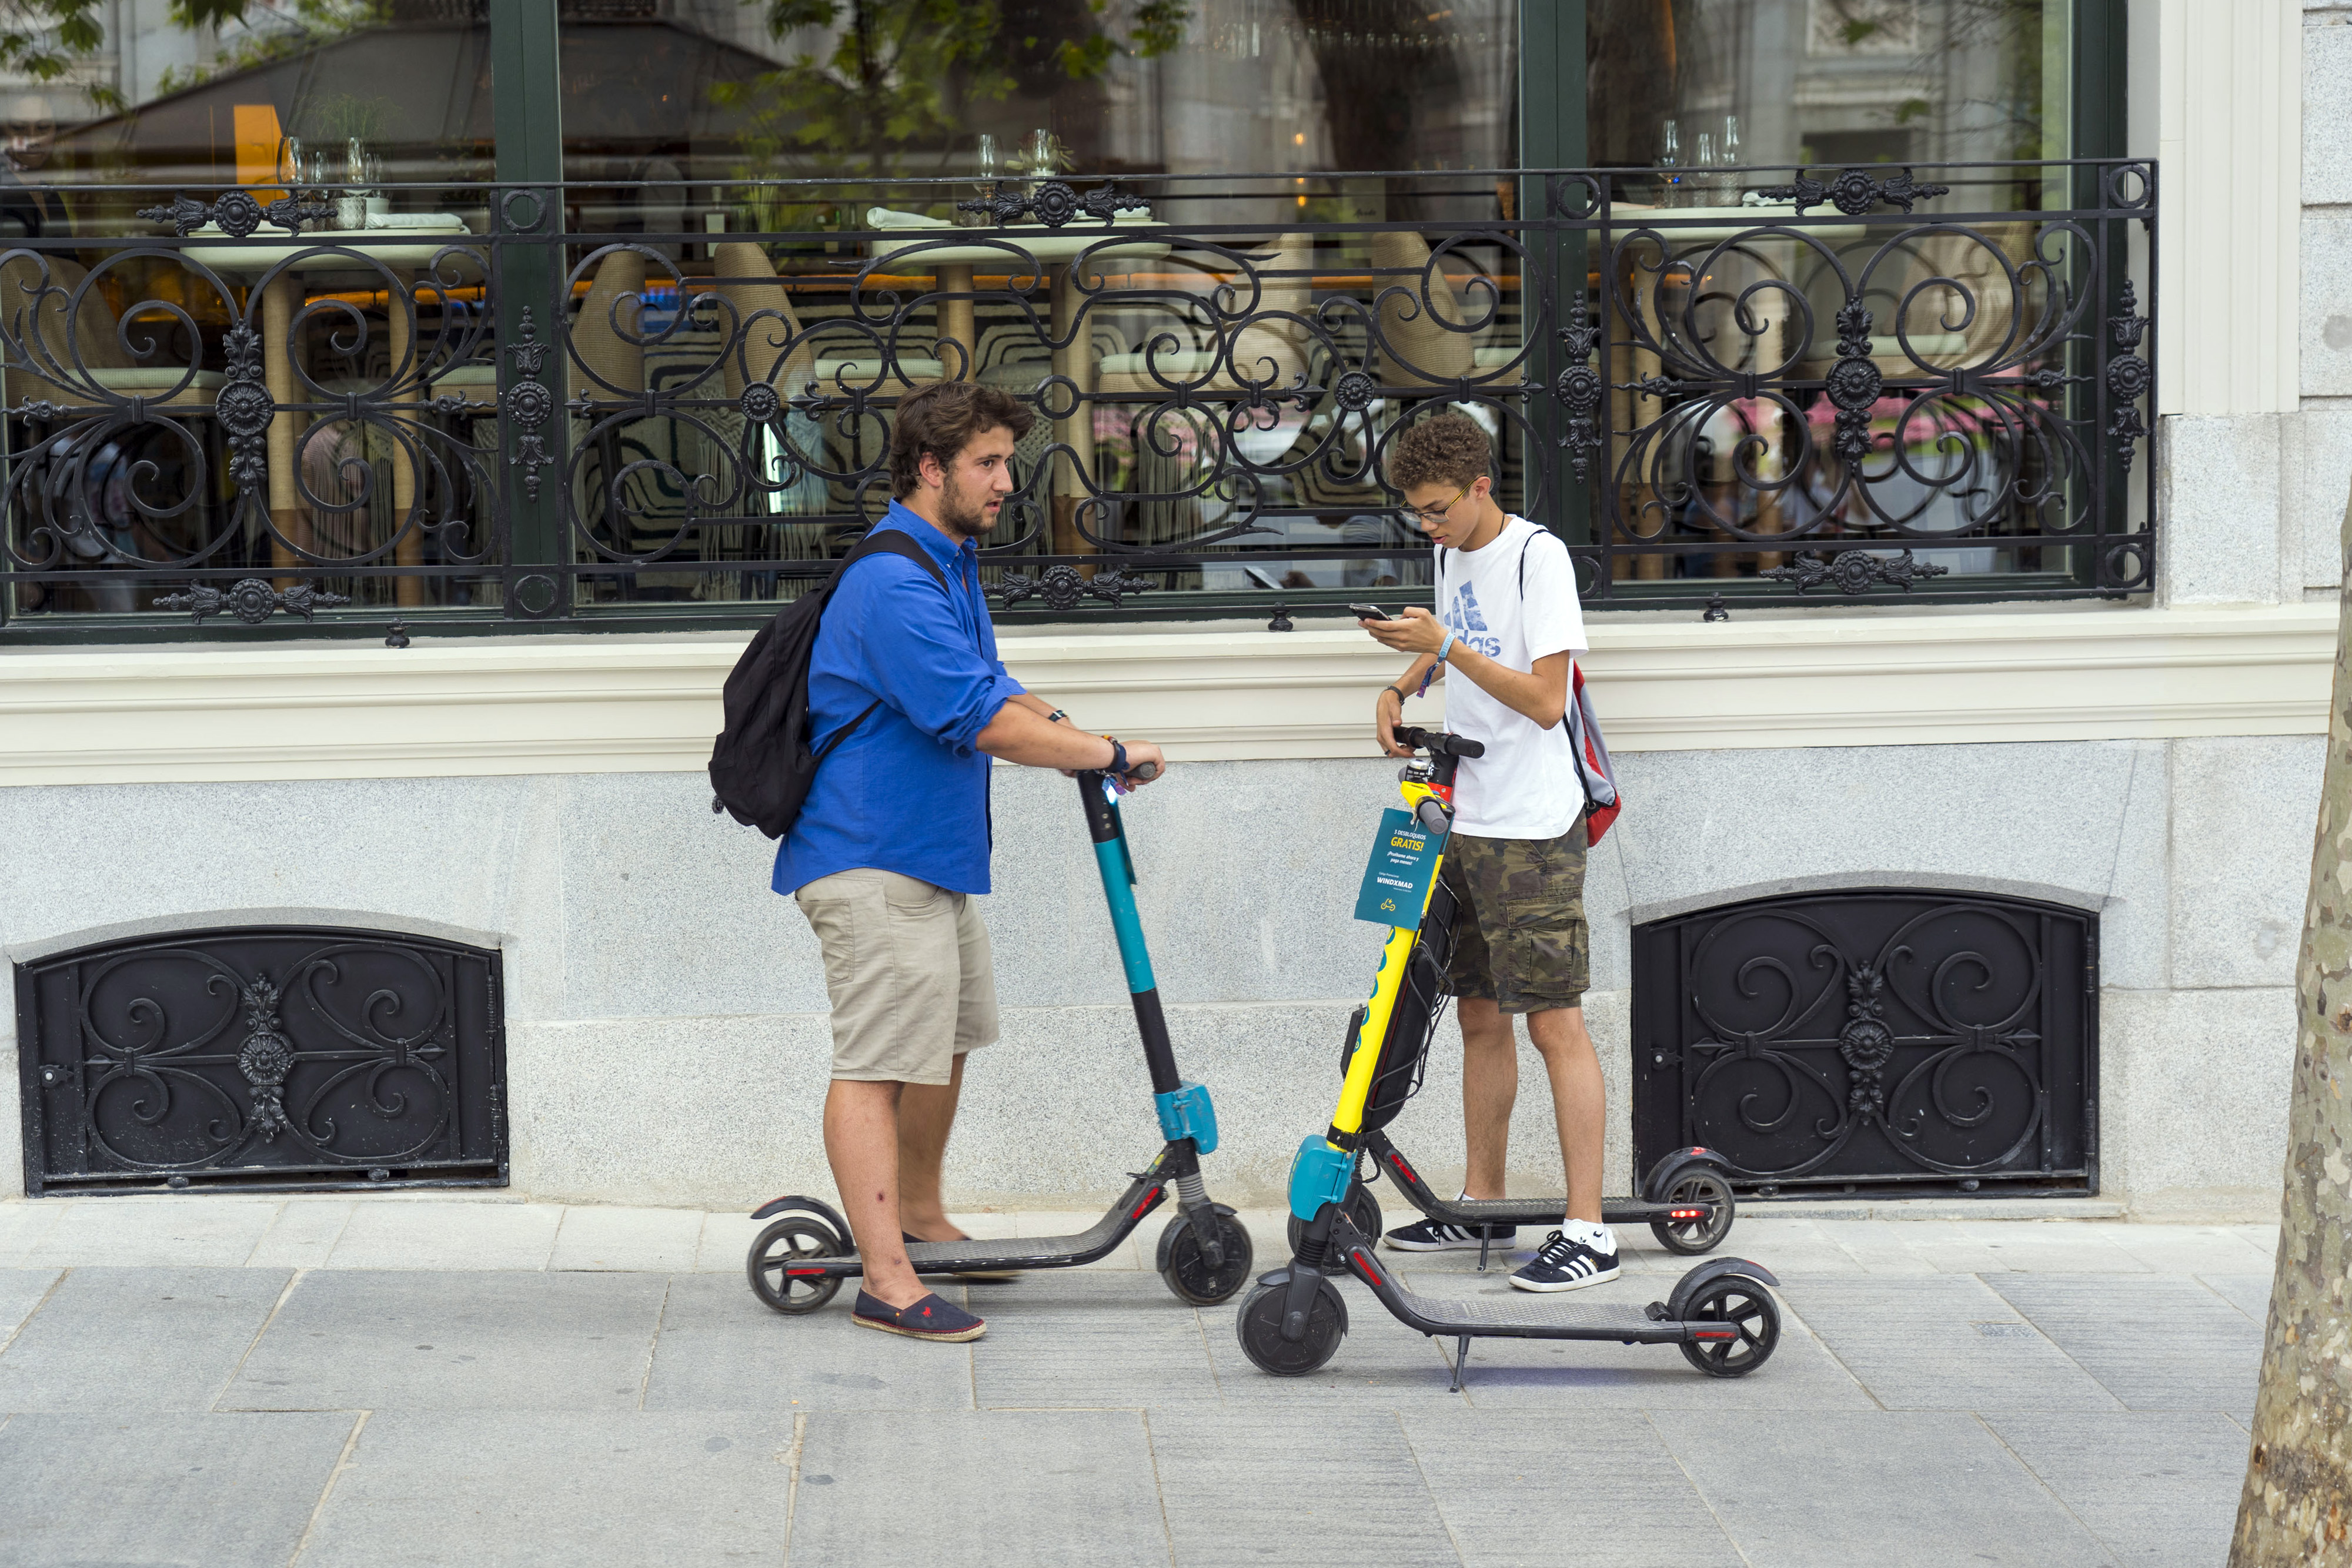 After death of YouTube star, Amazon will push for e-scooter